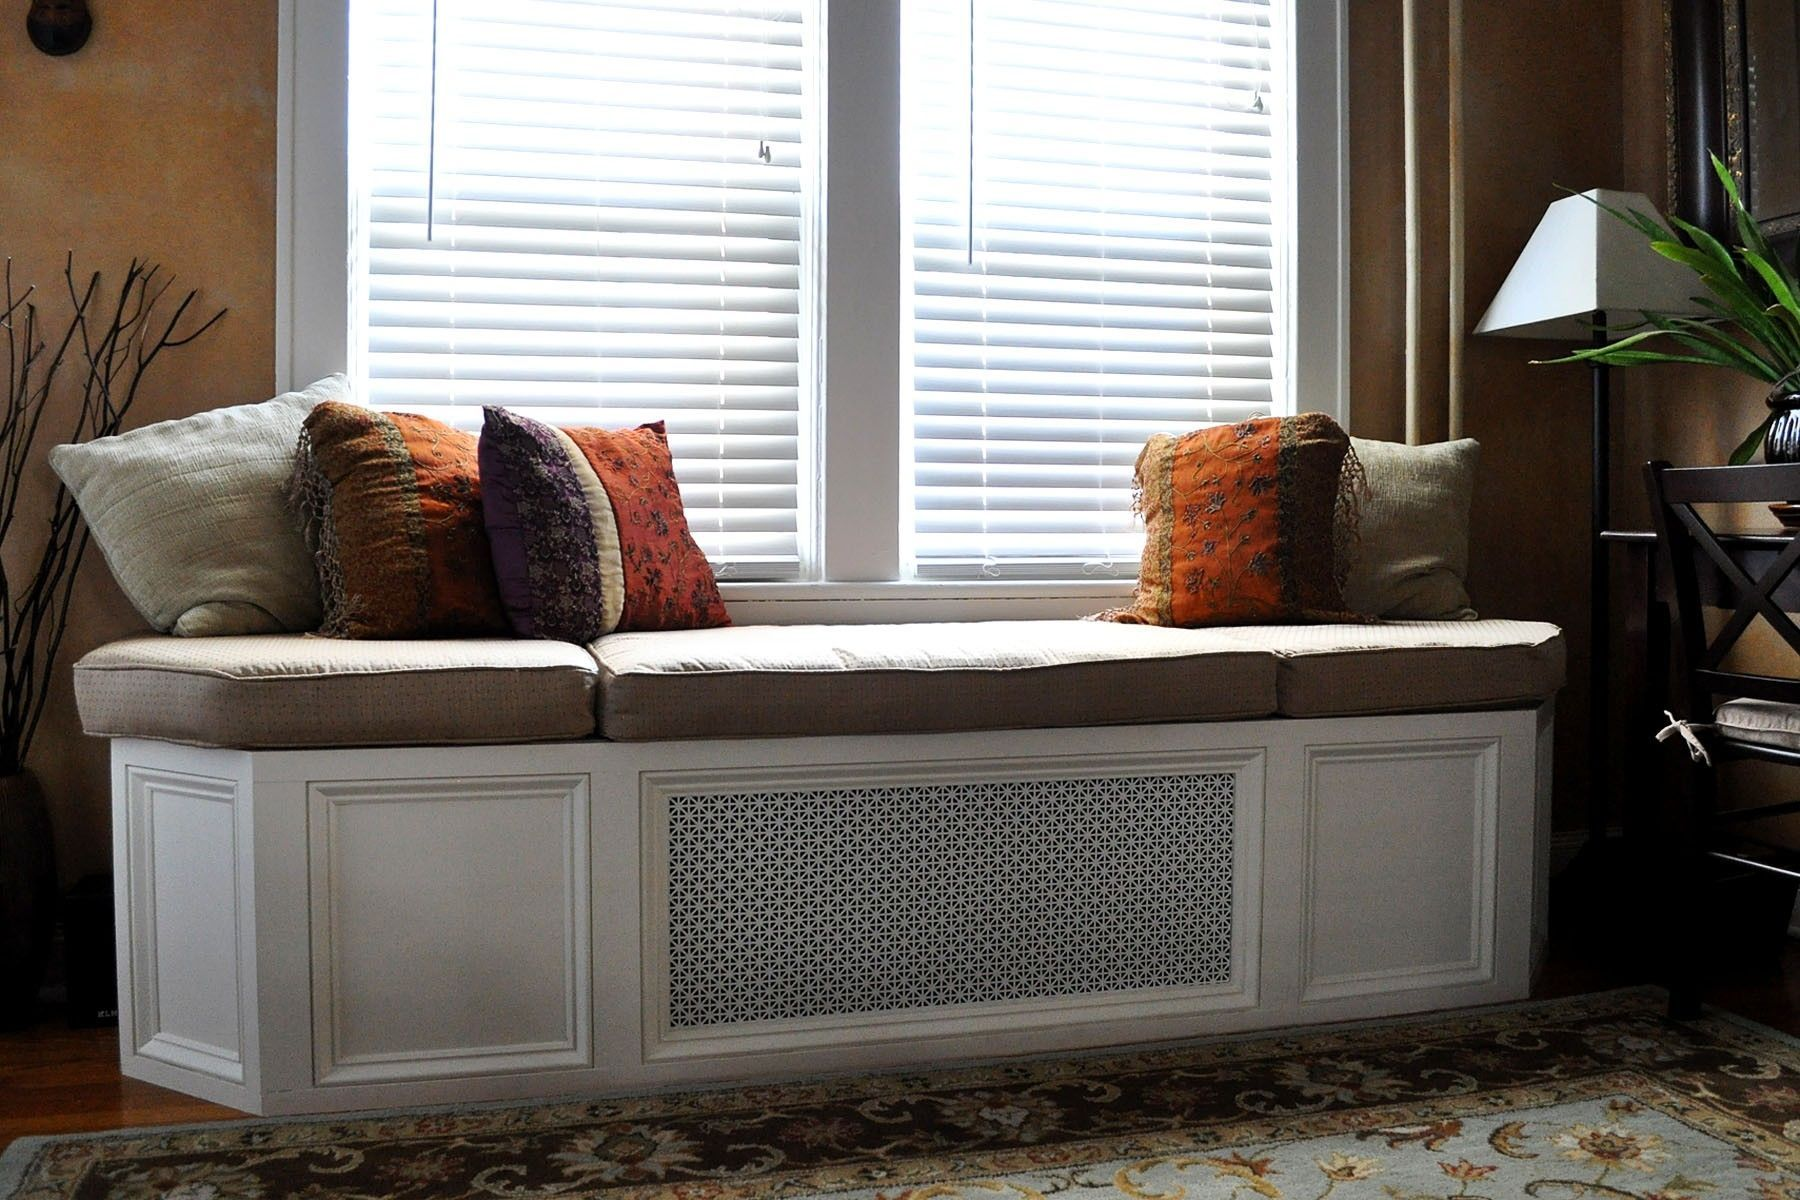 Diy Wooden Window Bench Seat With